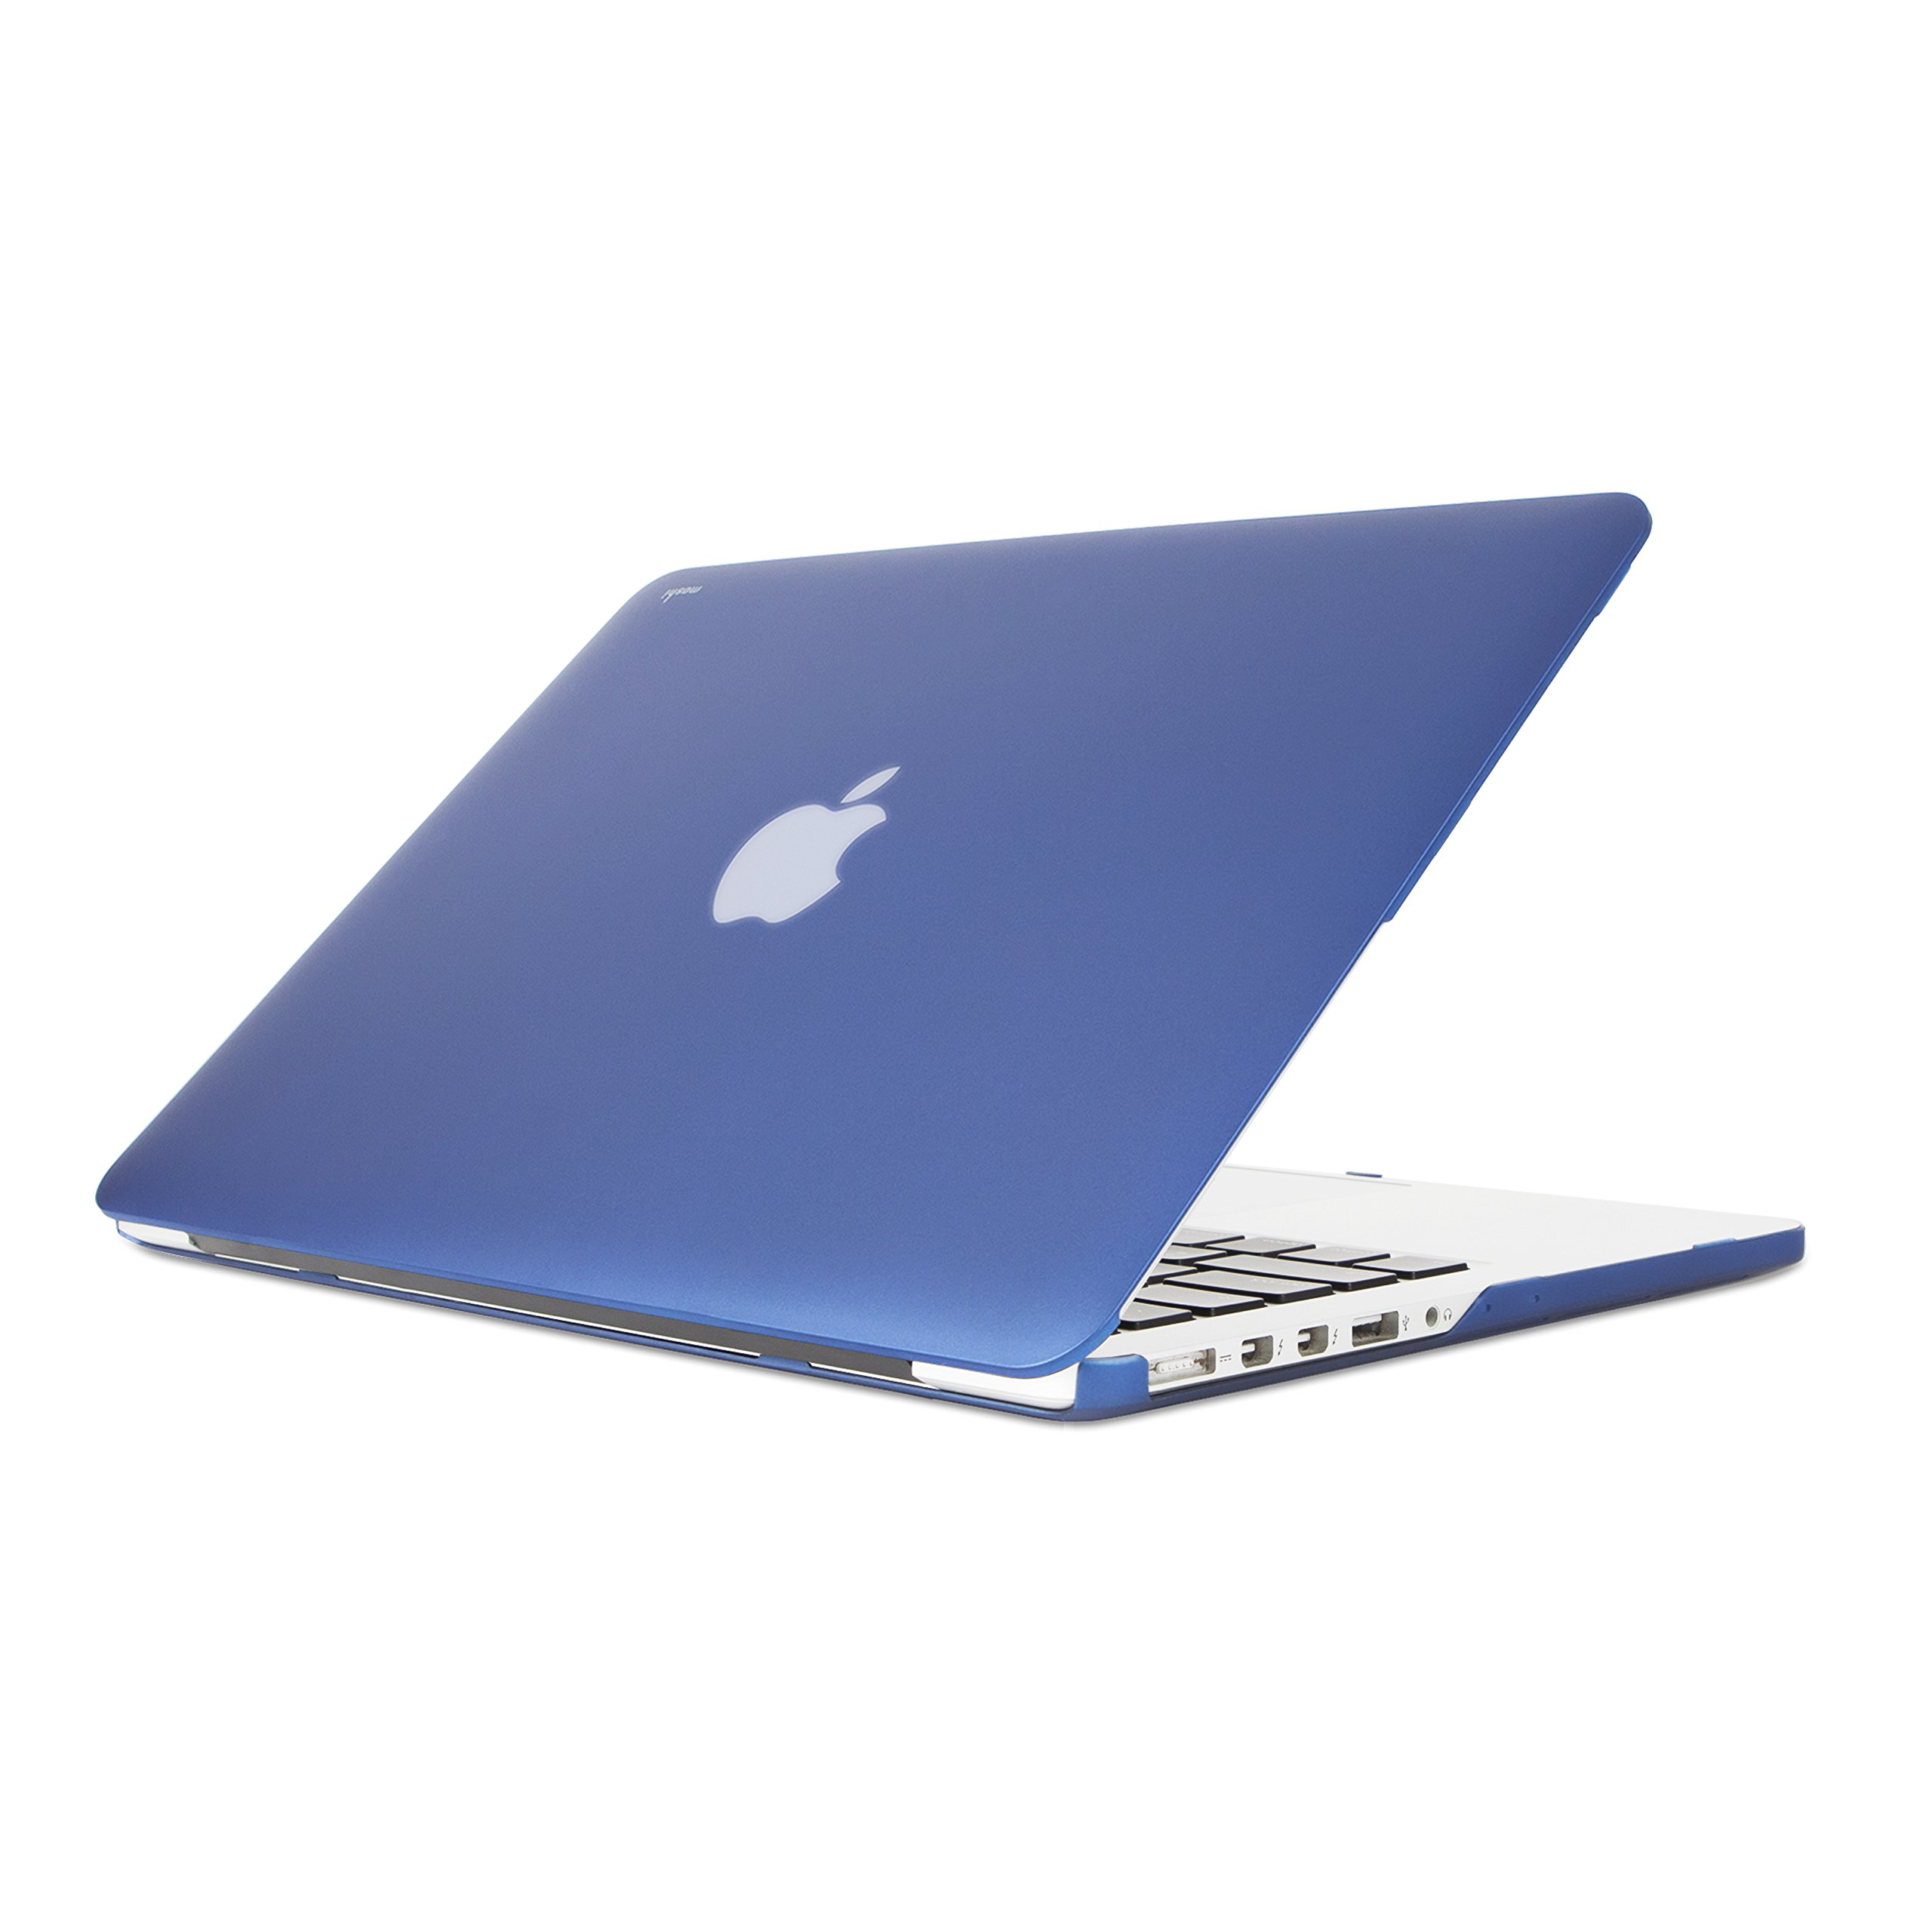 Moshi iGlaze MacBook Pro 13'' Hardshell Case (w/ Retina Display) - Indigo Blue by Moshi